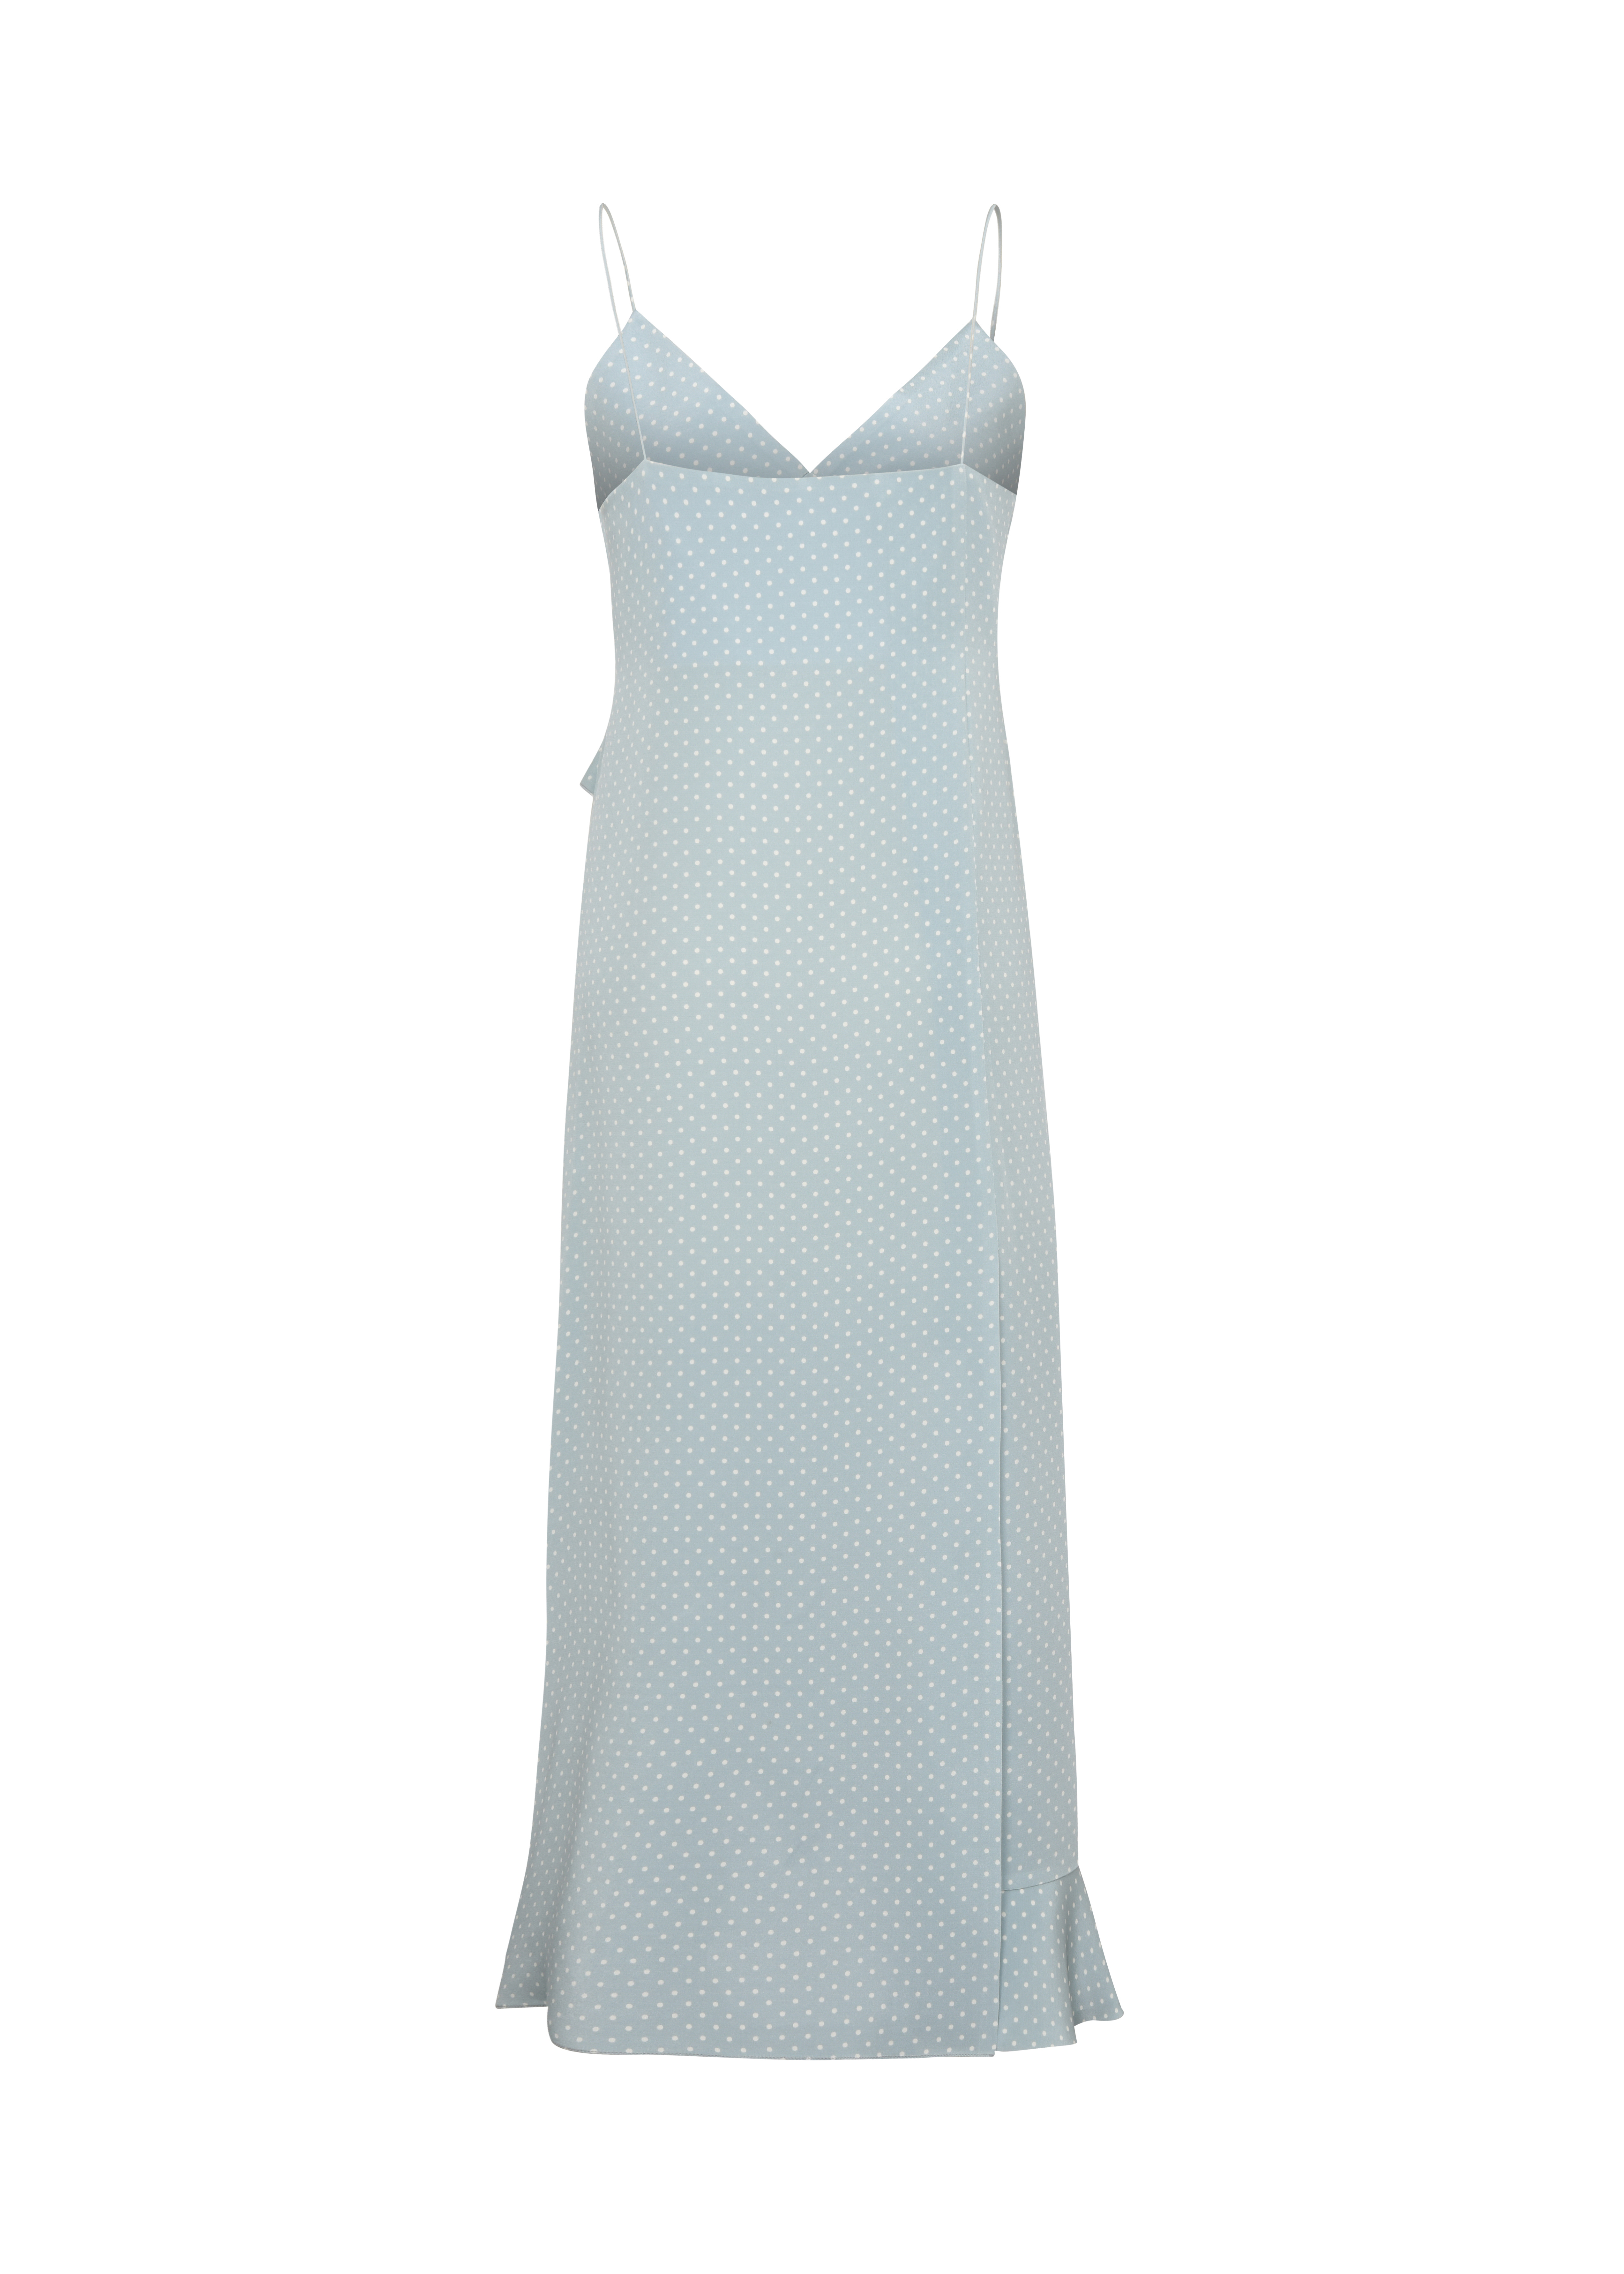 Lucette Dress - Mint by Podeny on curated-crowd.com